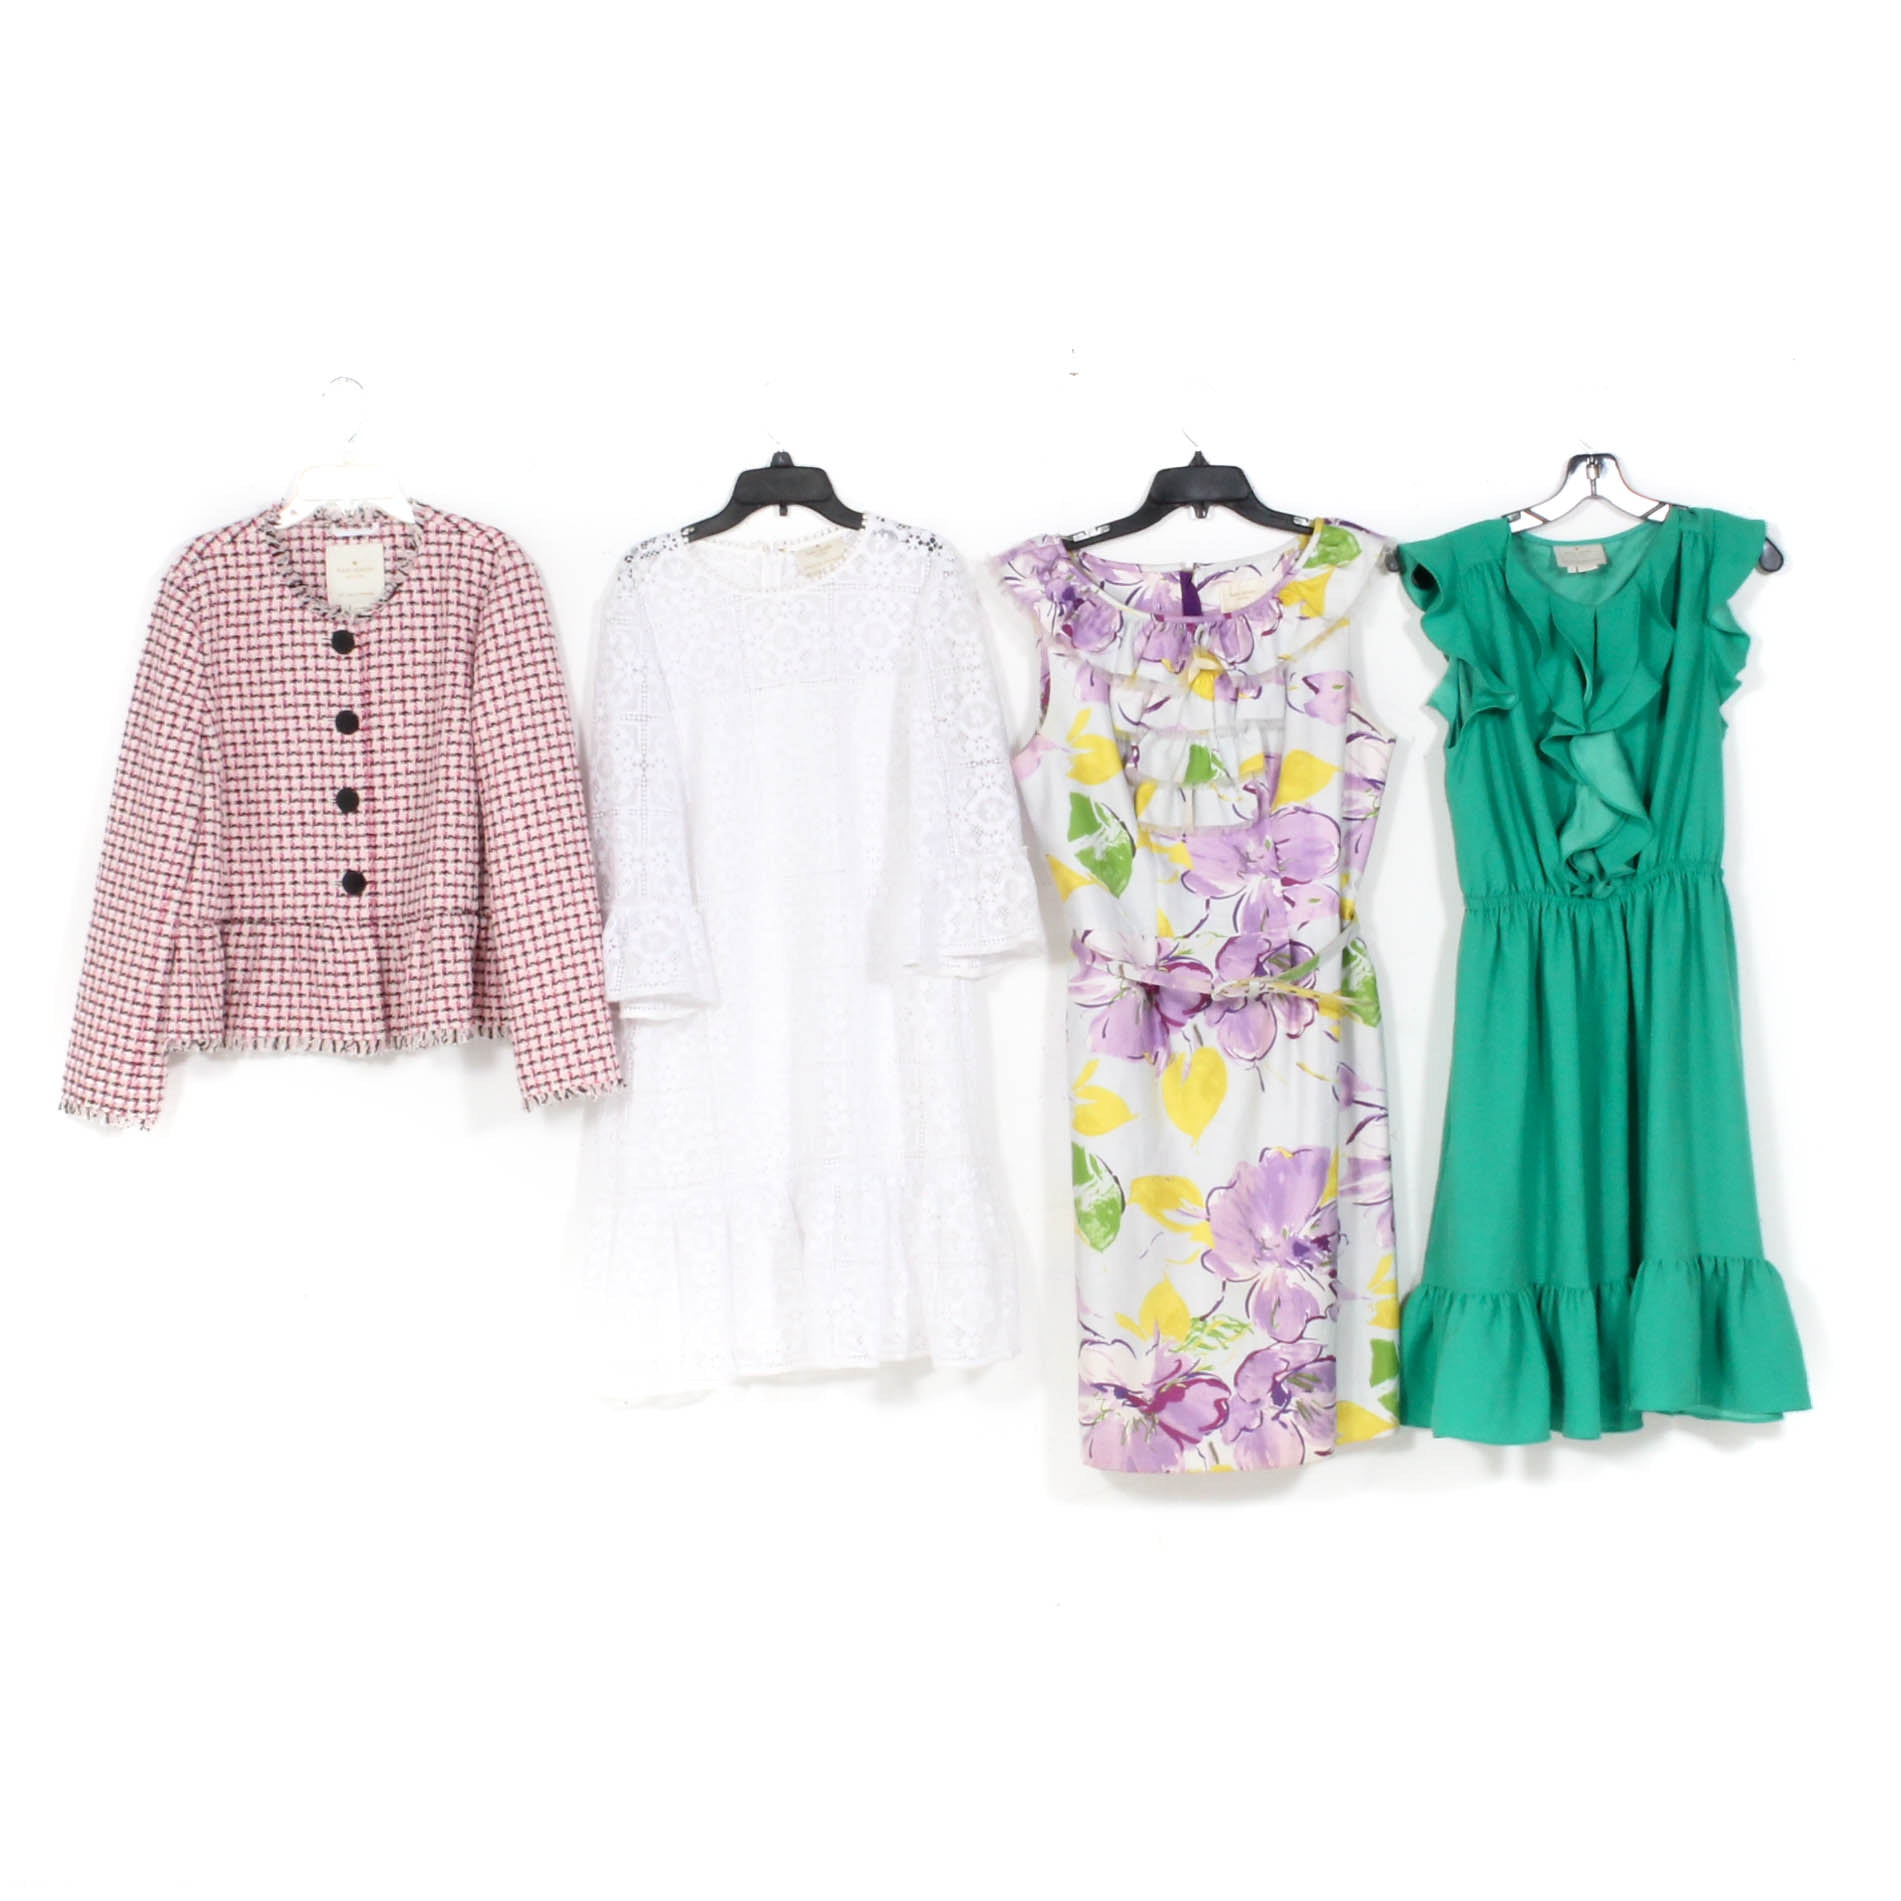 Kate Spade New York Dresses and Knit Blazer